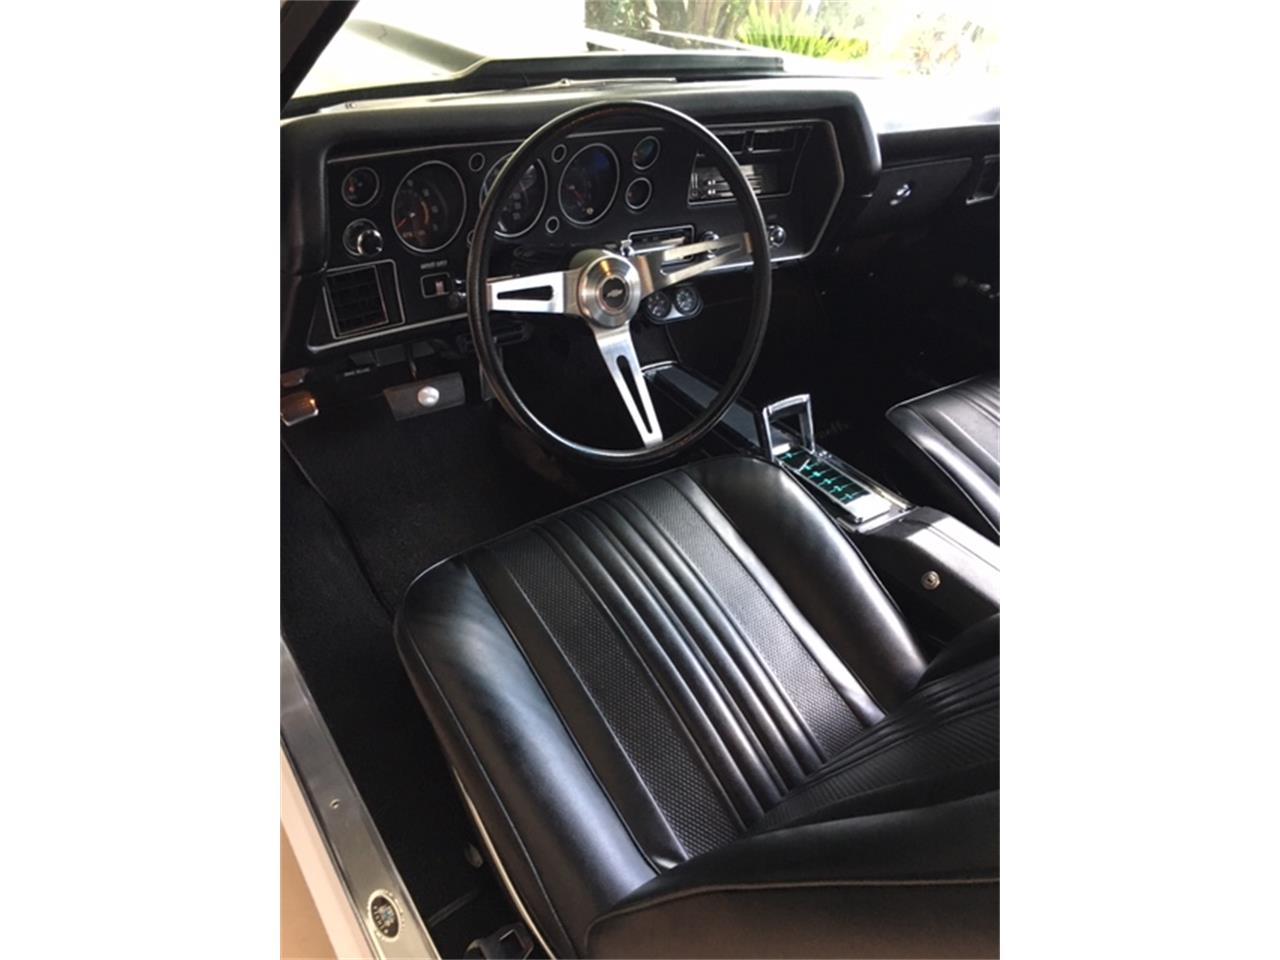 1970 Chevrolet Chevelle SS for sale in Metairie, LA – photo 19